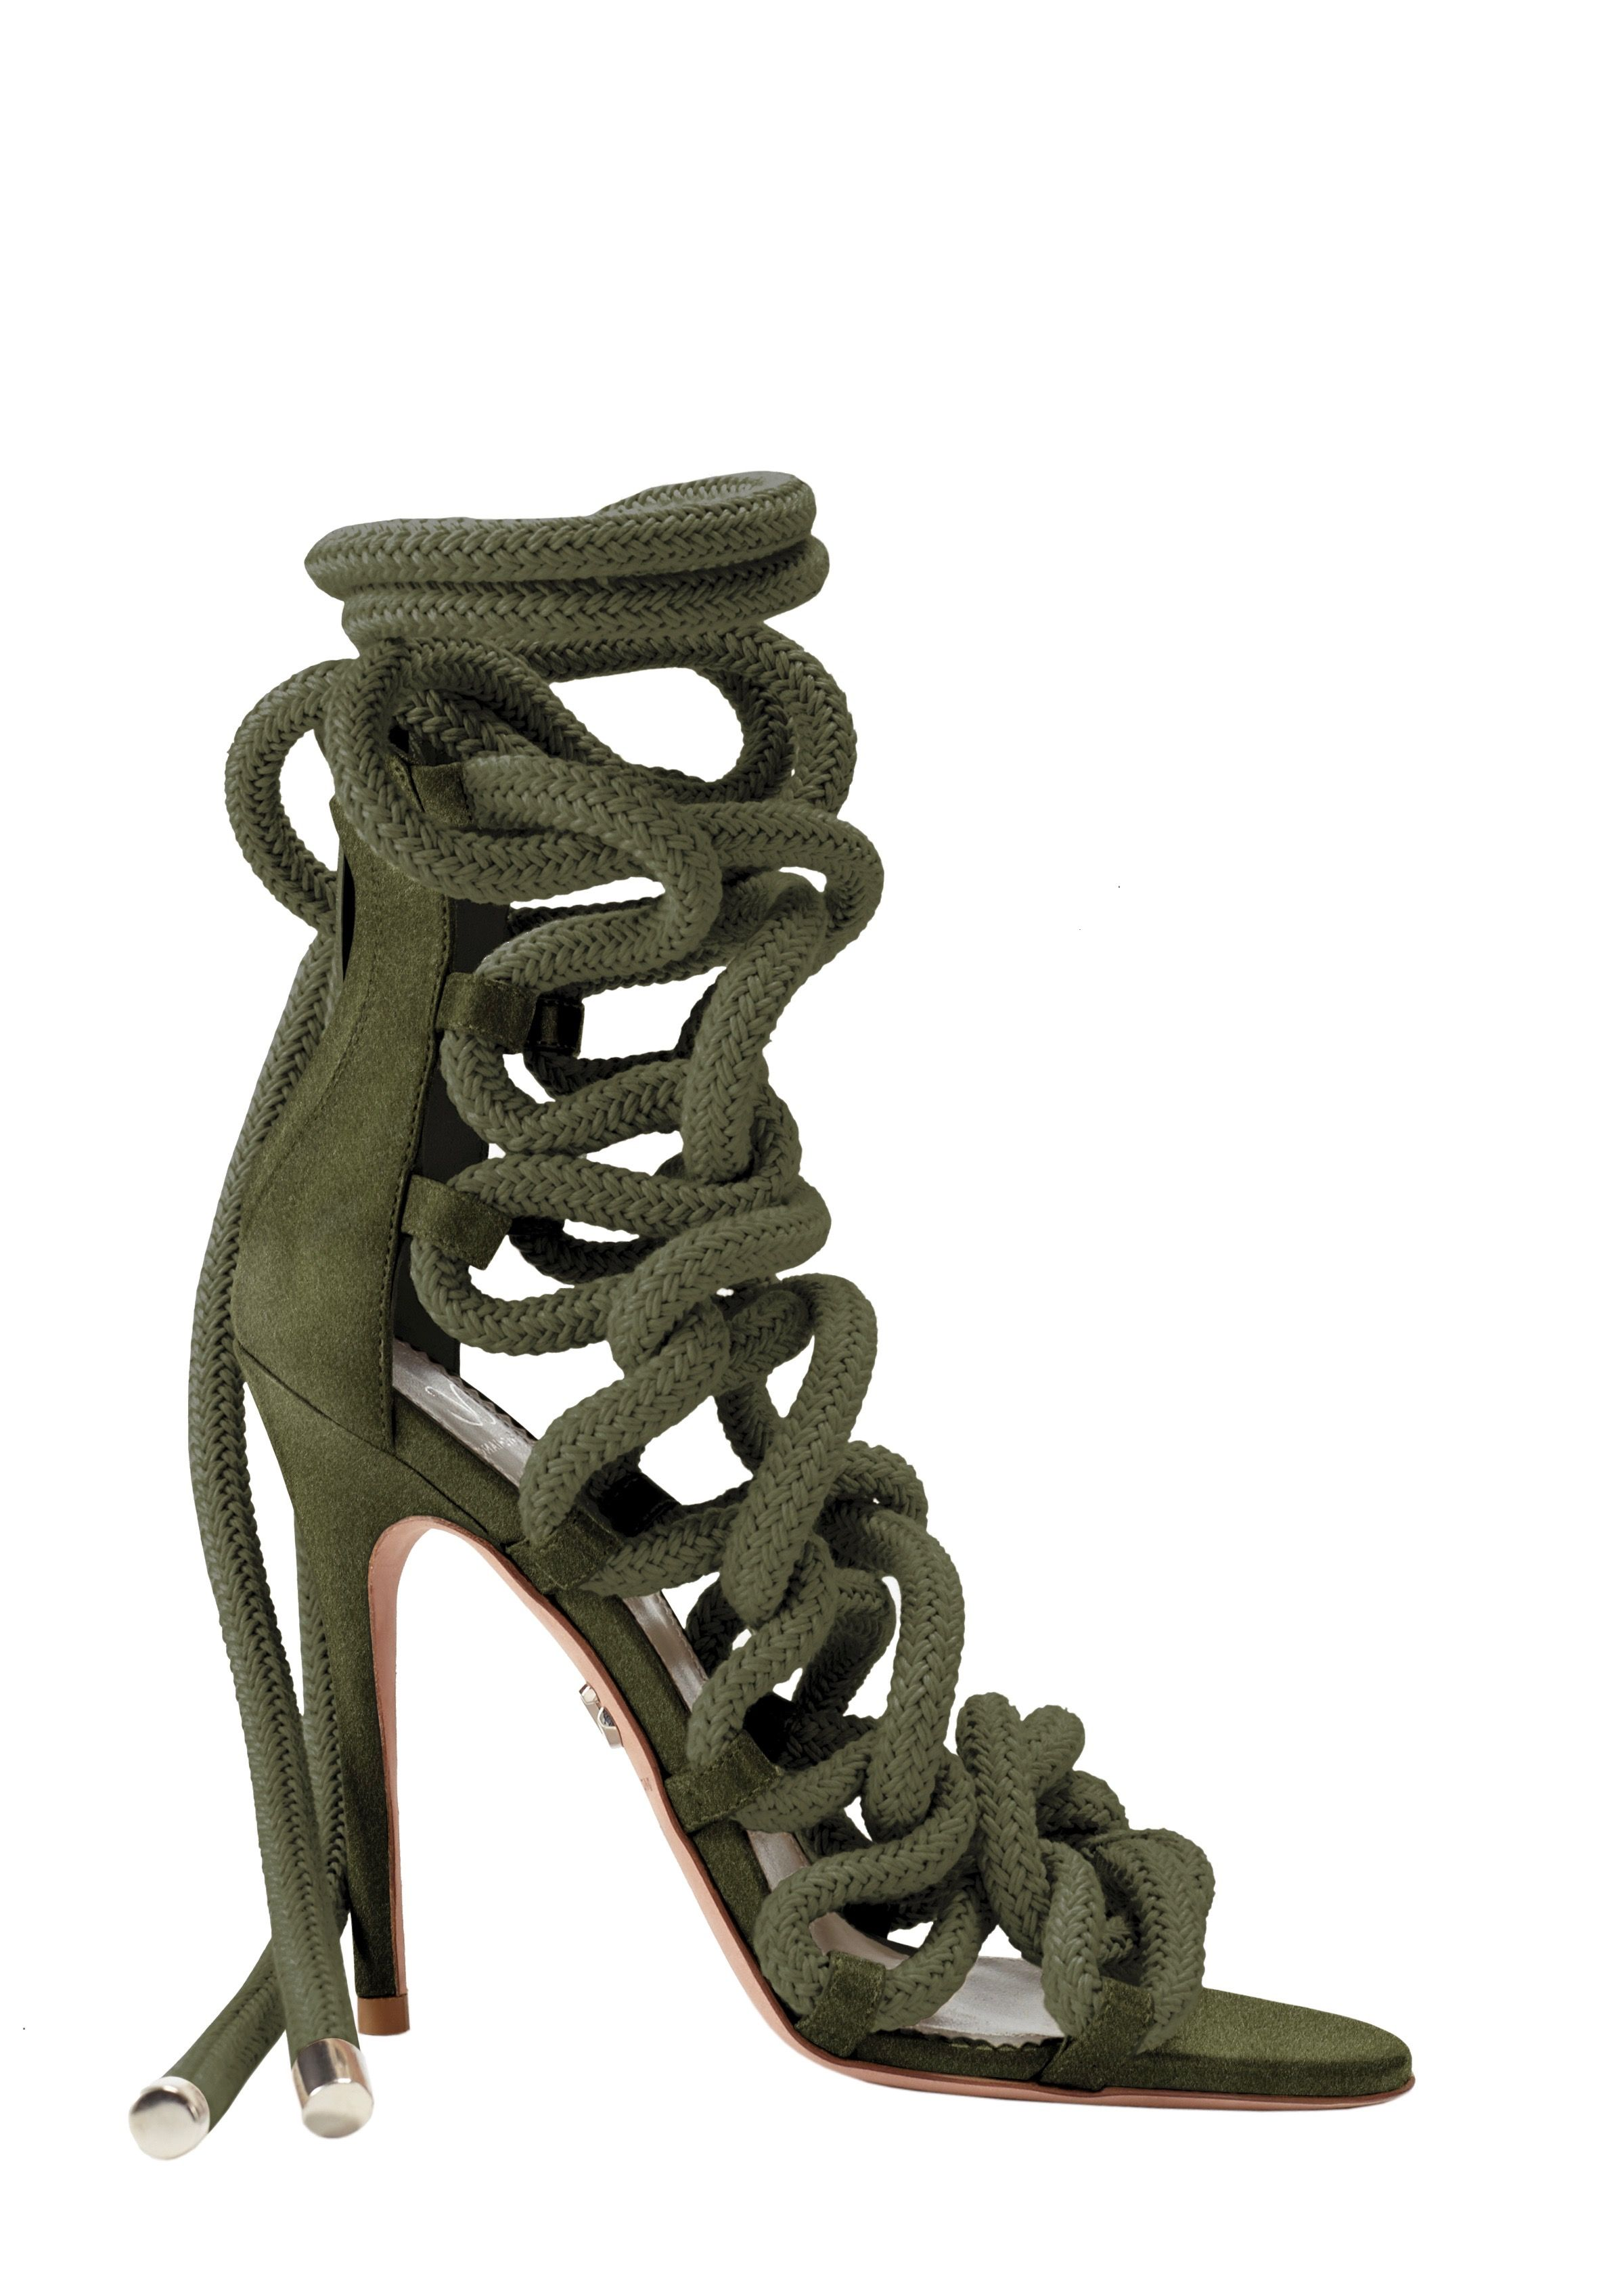 Carla Army Green Suede Rope Sandals - Monika Chiang